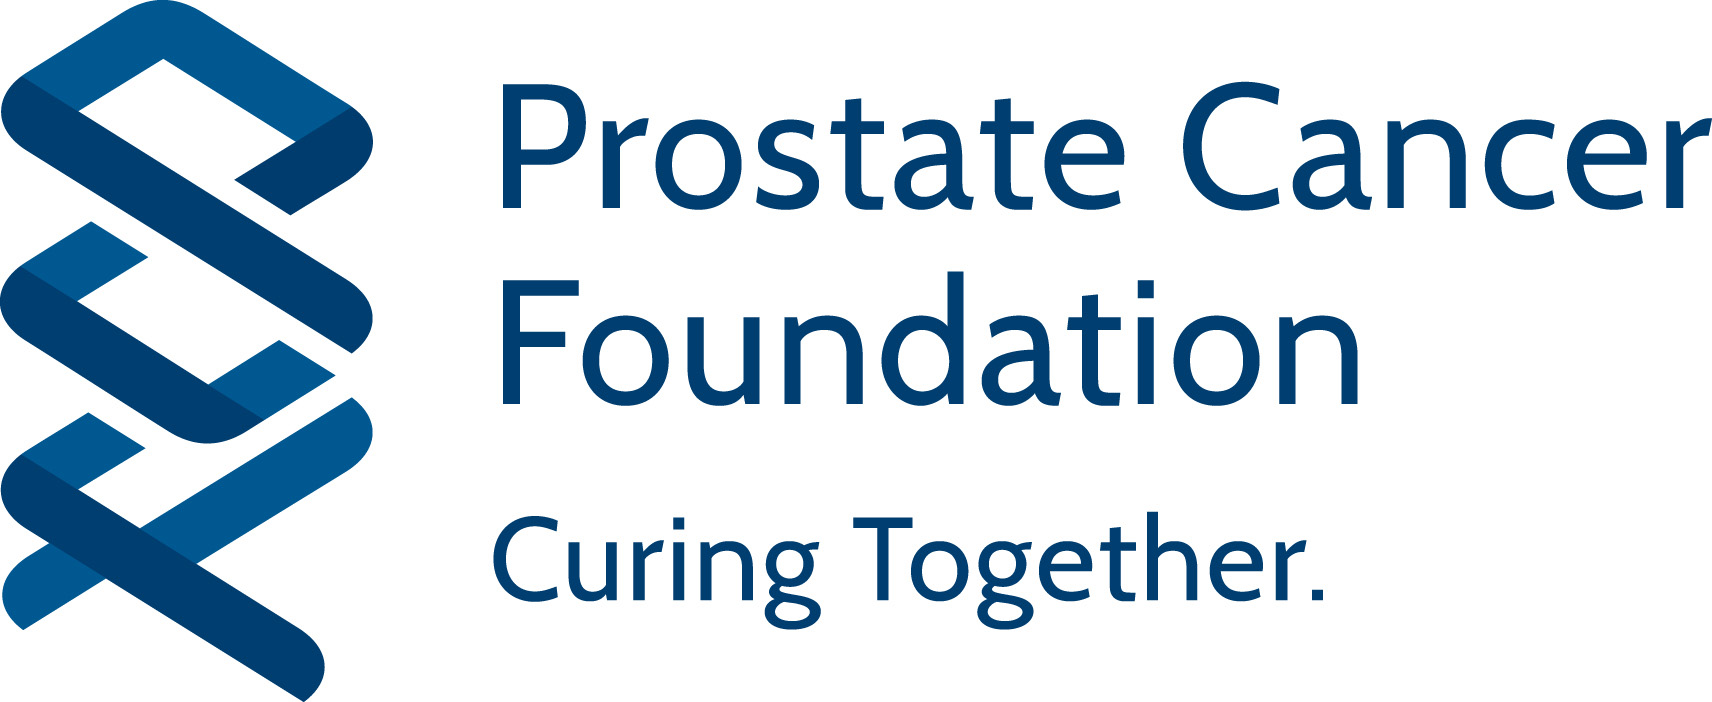 Prostate Cancer Foundation Launches New, Patientcentric. American Roofing Company Lawyers In Charlotte. Pittsburgh Community Colleges. Kitchen Remodeling Katy Tx Individual K Plan. Corporations In Alabama Auto Insurance Qutoes. Online Colleges In Indianapolis. How Long Is A Medical Billing And Coding Program. Northwestern University Phd Pre Med School. New York Car Insurance Laws Jaguar Xj Tuning